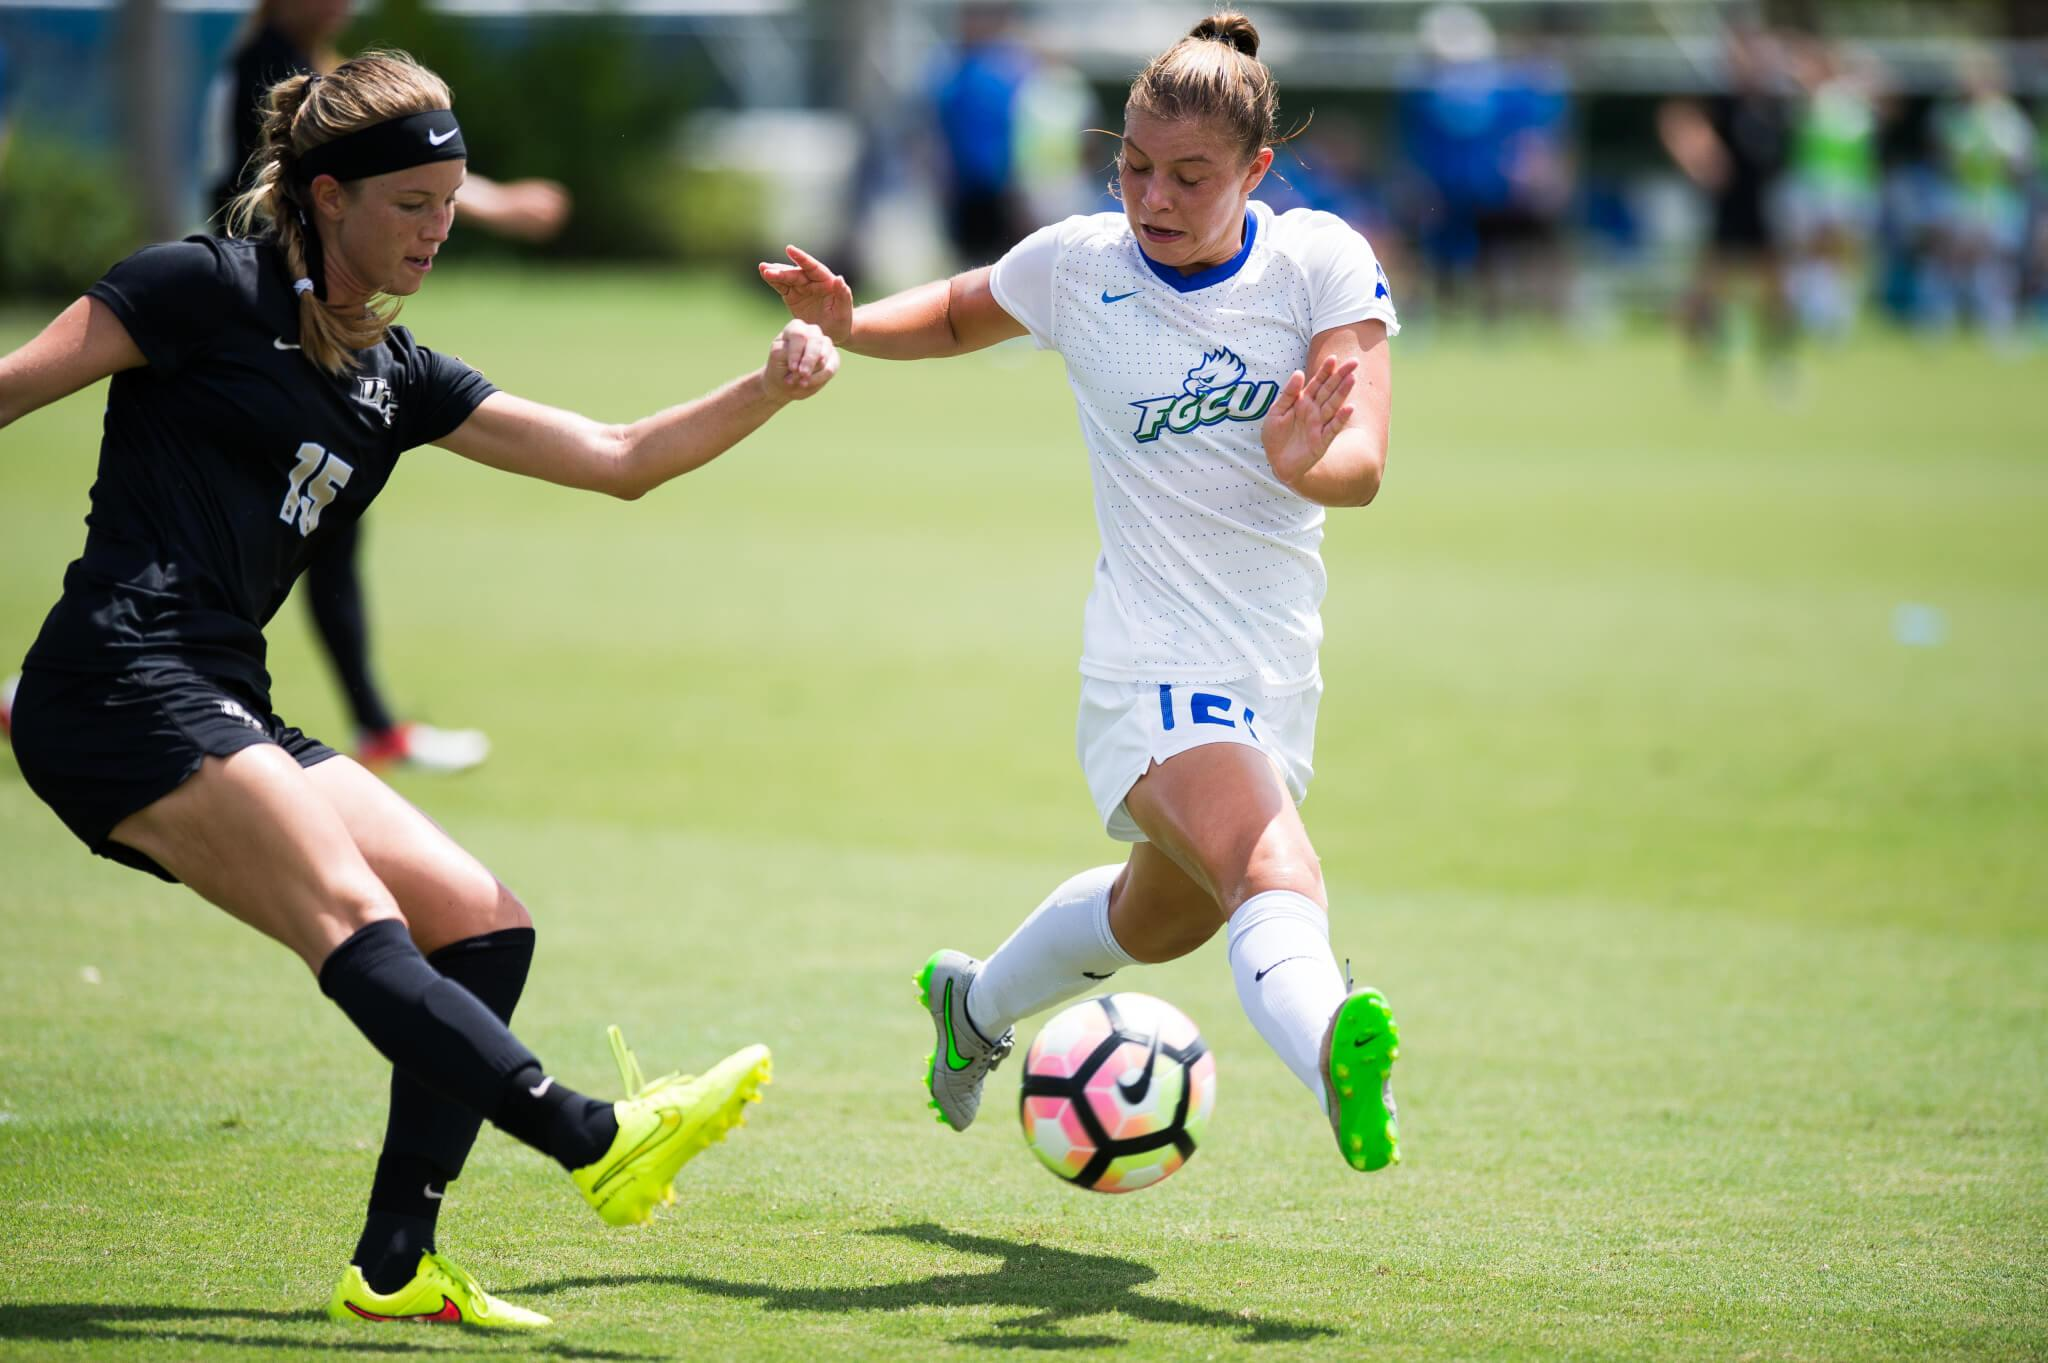 Preview: FGCU women's soccer at Stetson